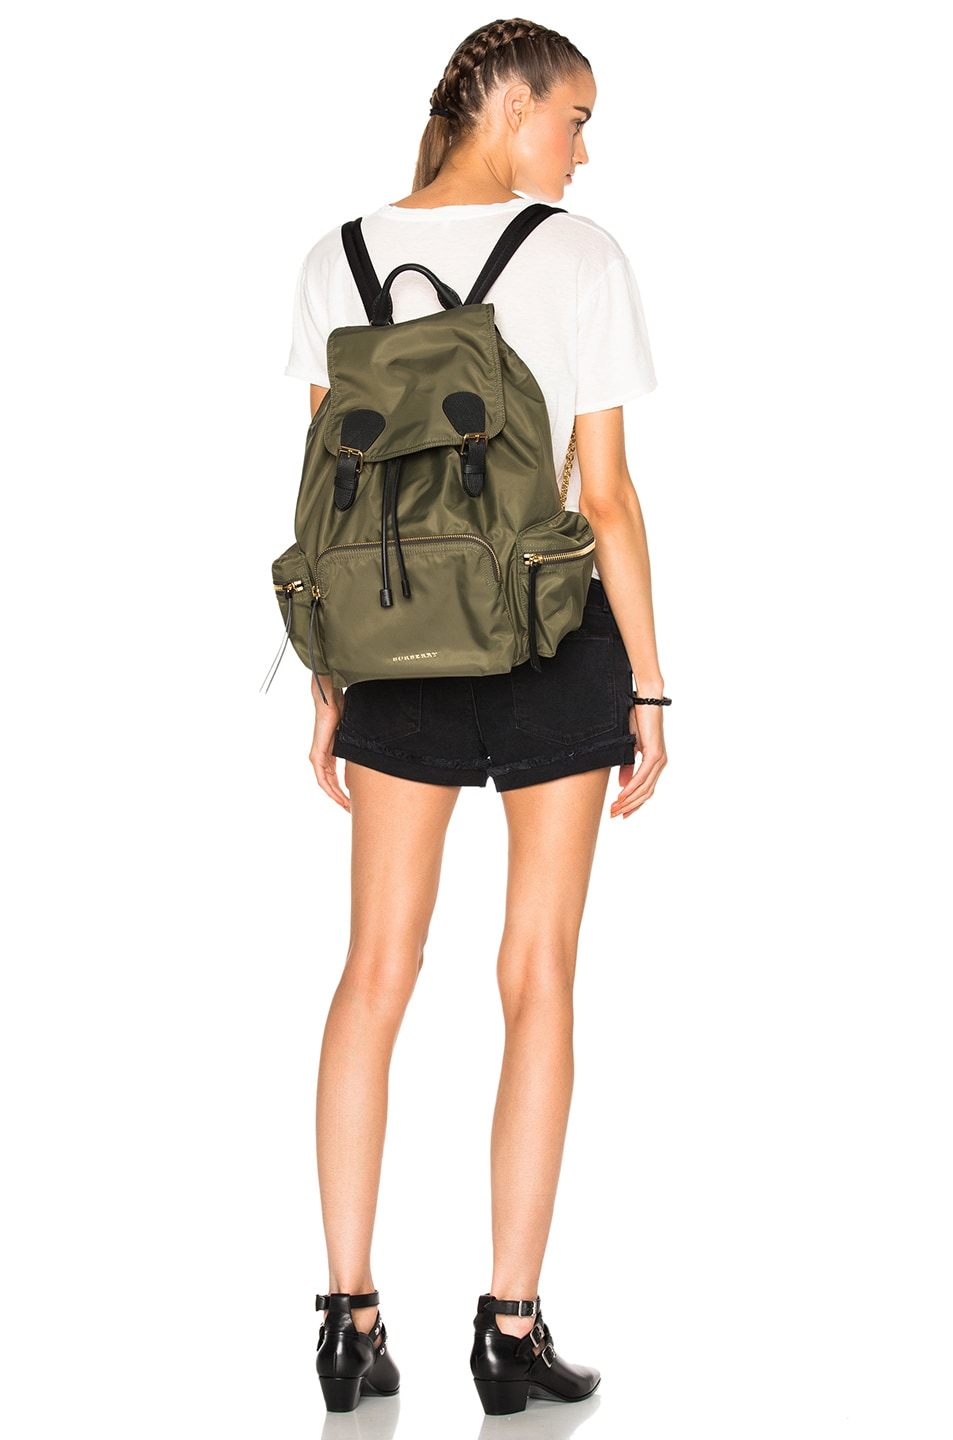 Image 2 of Burberry Prorsum Large Nylon Rucksack in Canvas Green 334b3f8039ed2